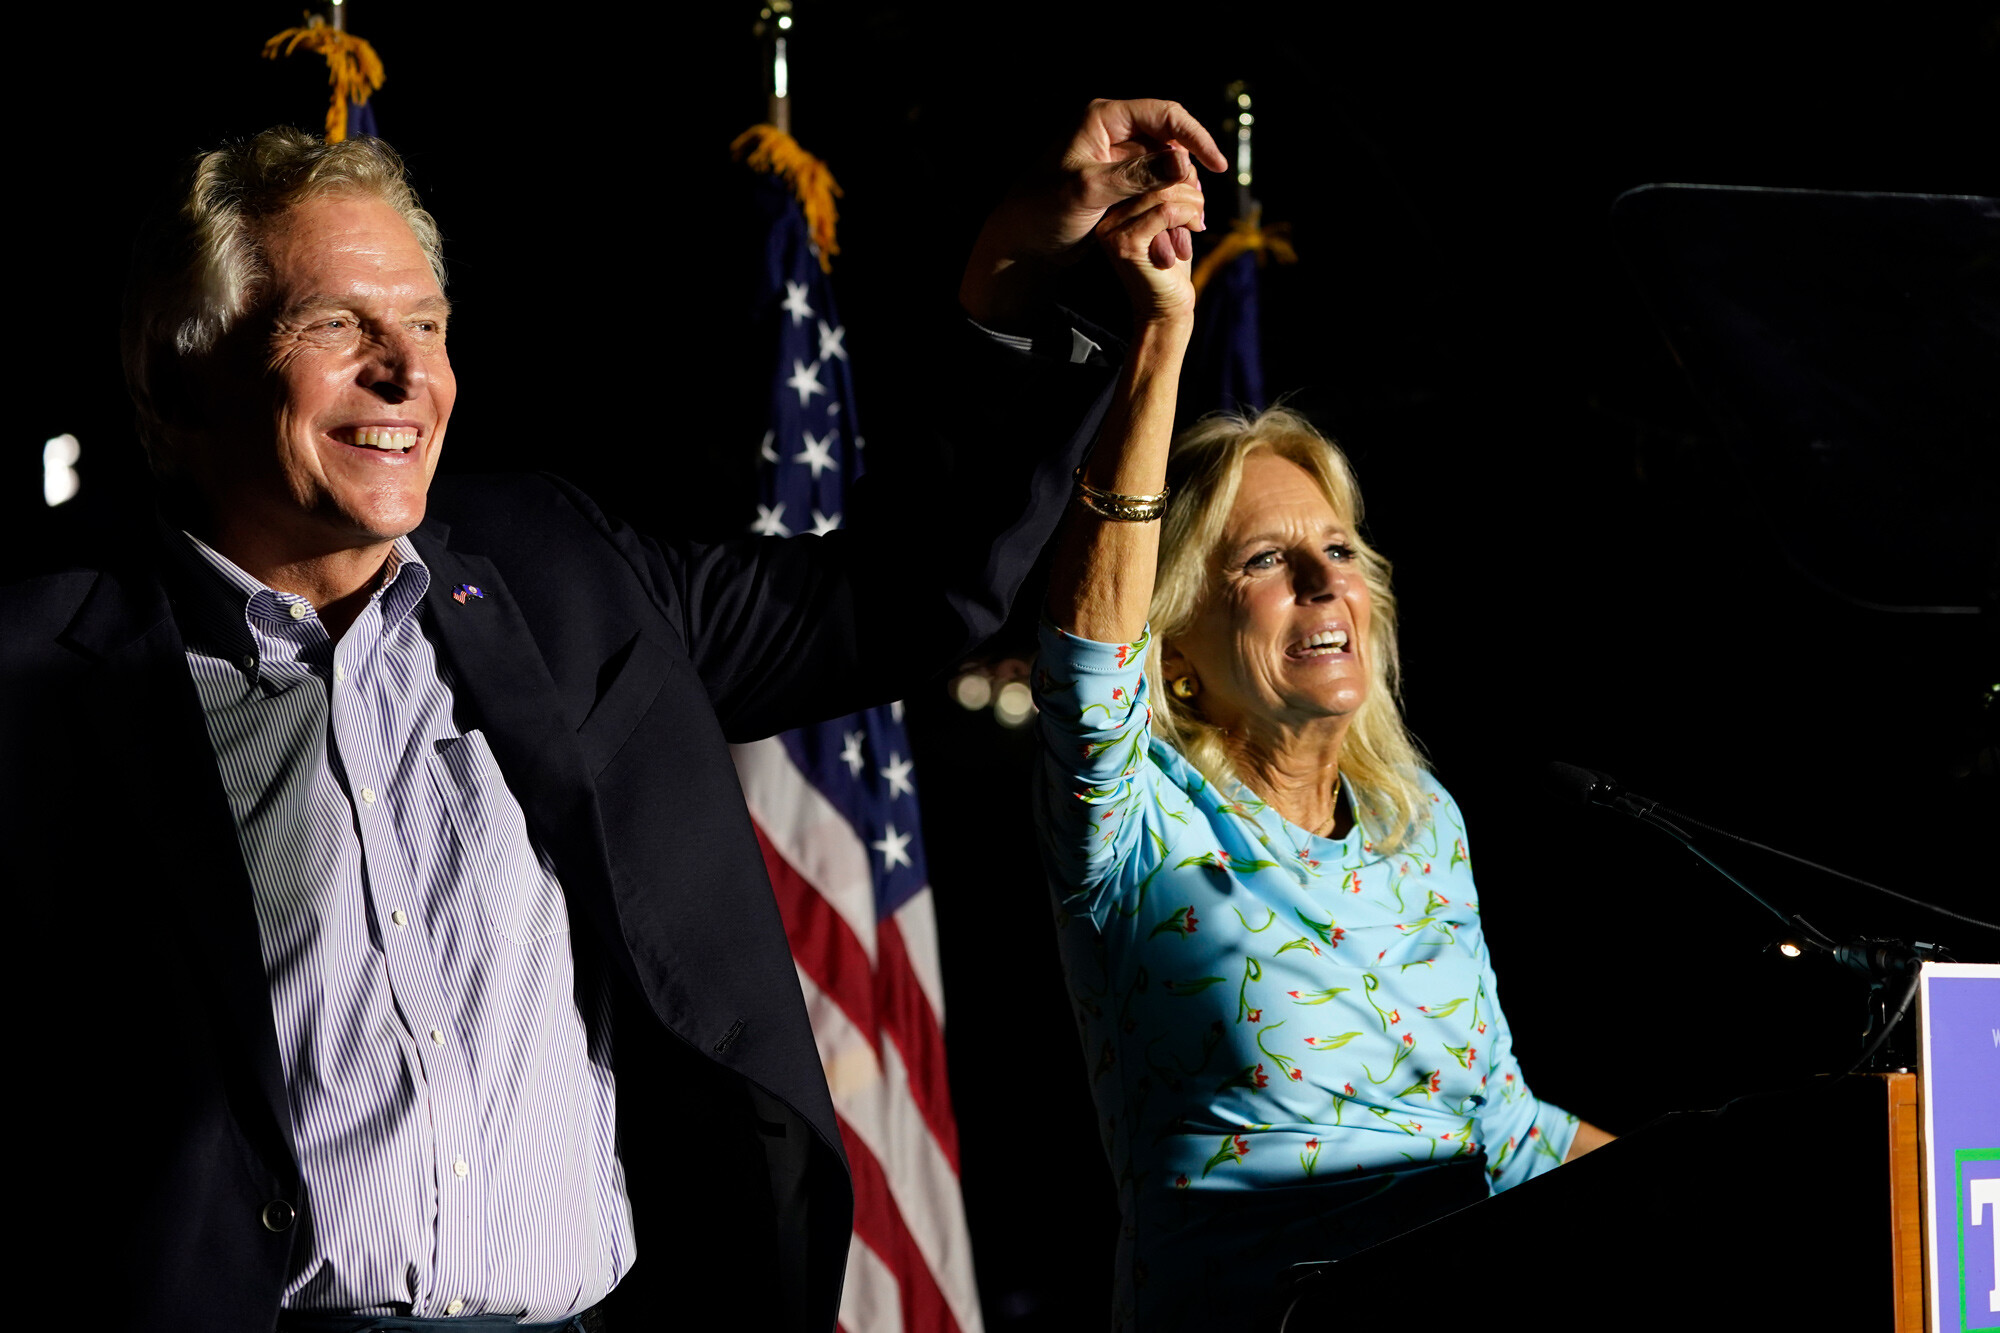 McAuliffe fights to engage politically exhausted Democrats in close of Virginia campaign